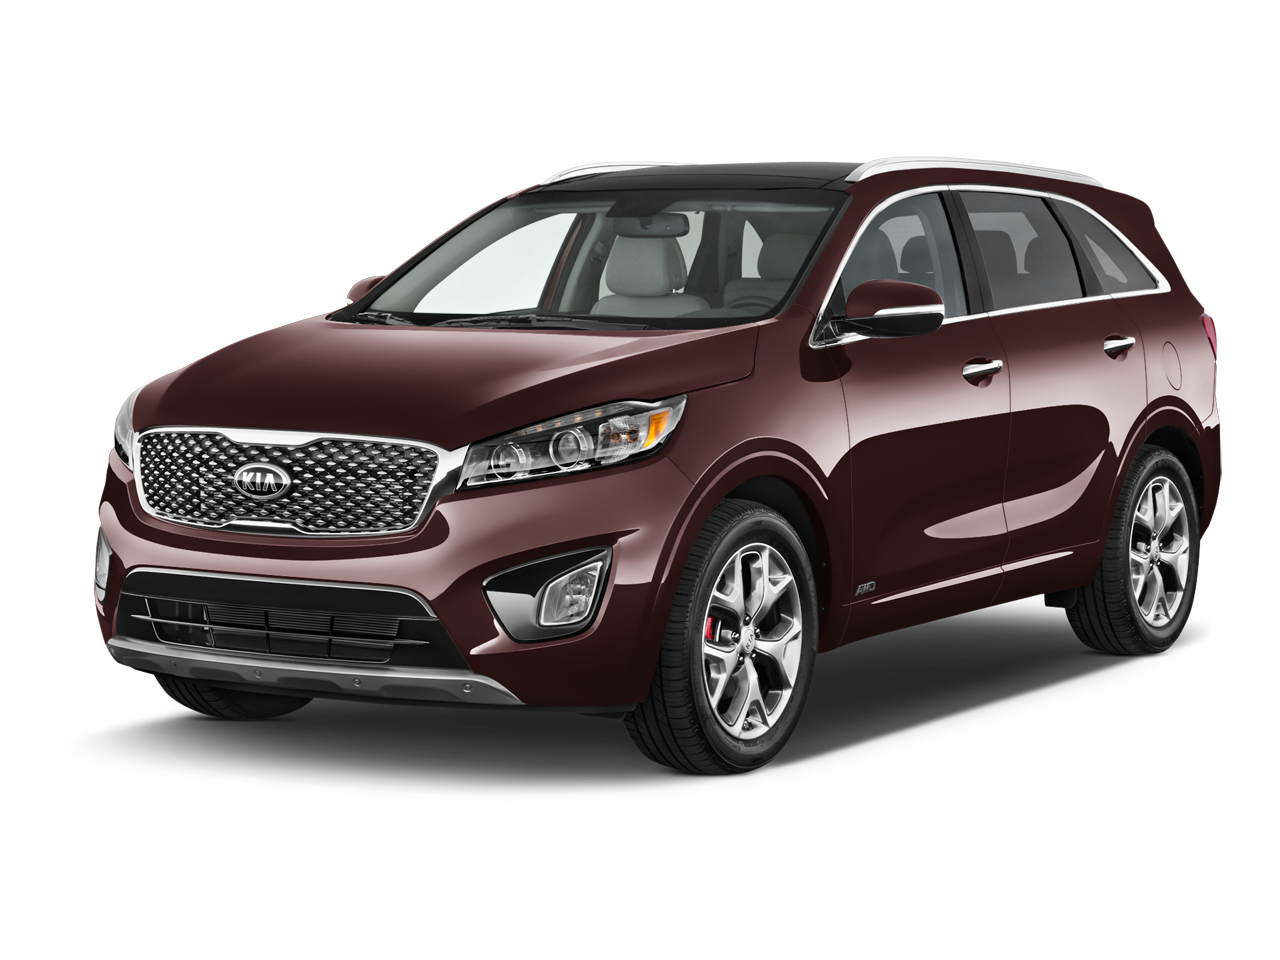 New Kia Sorento at Quirk Kia NH